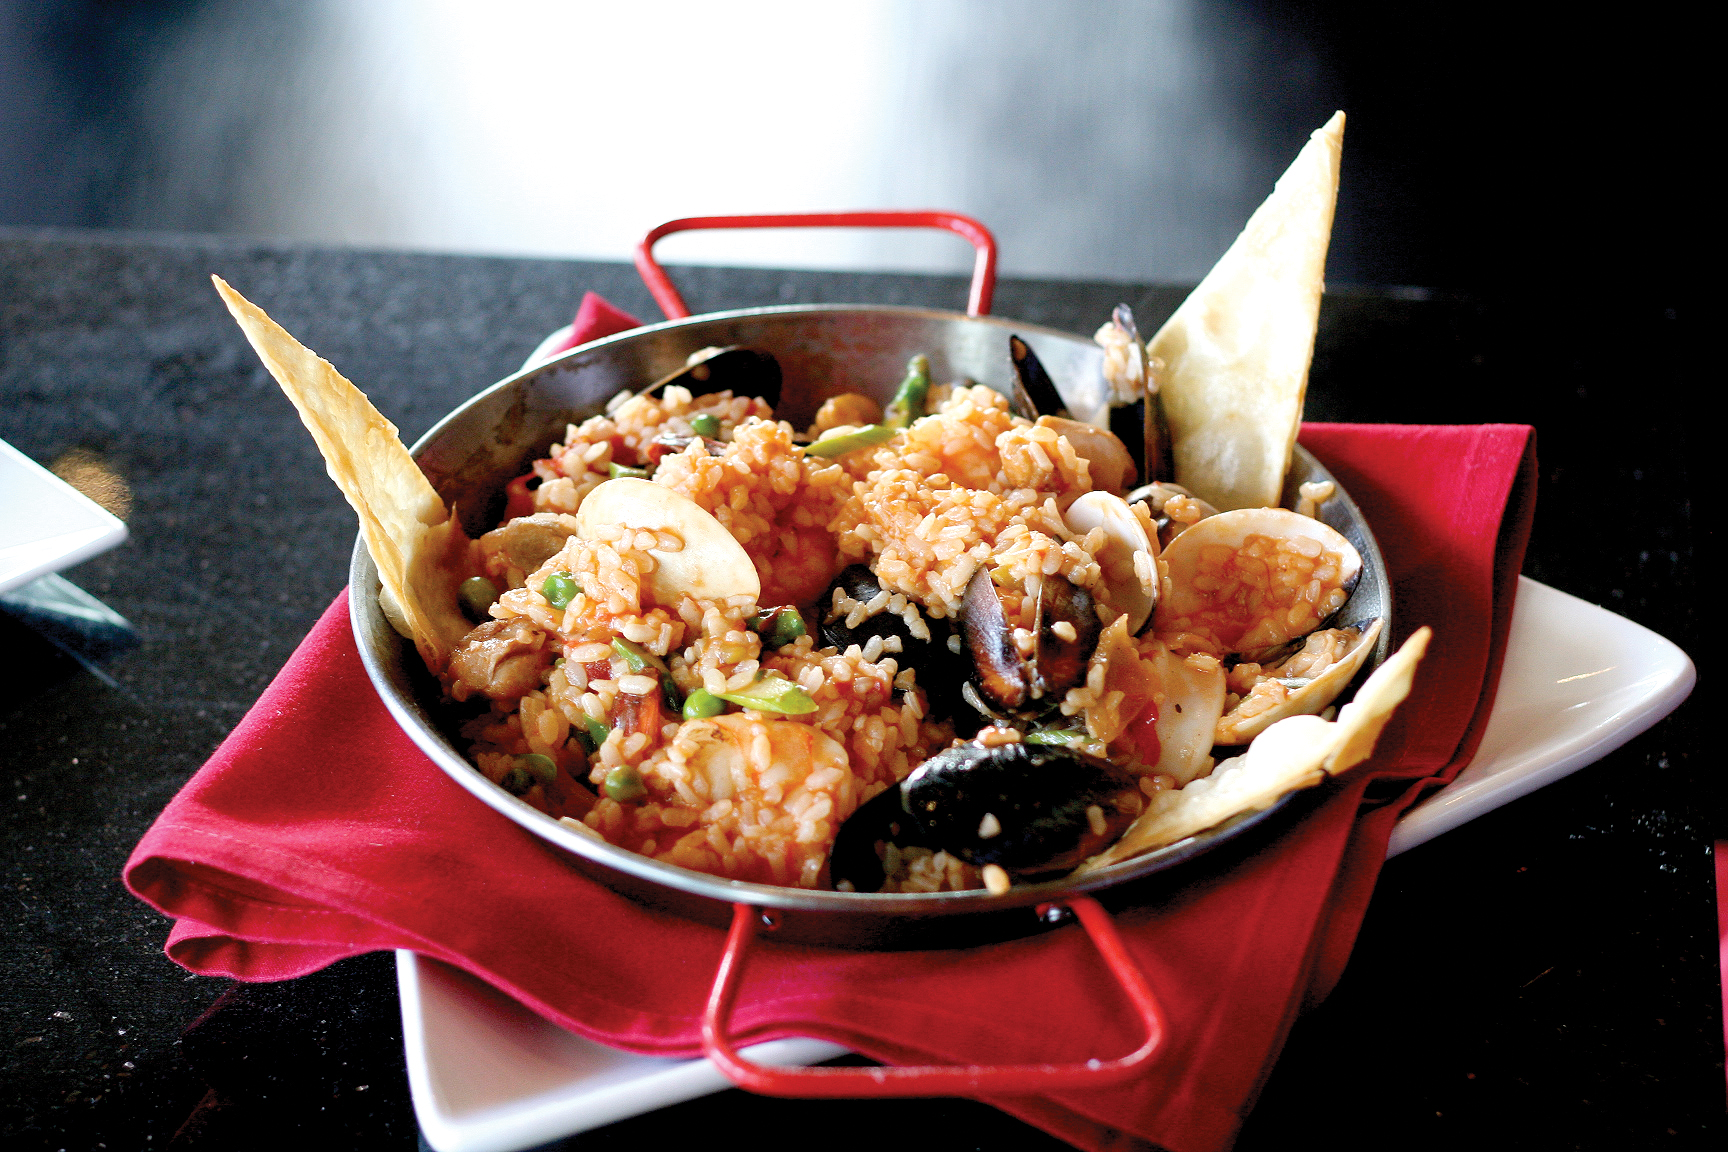 Paella: Seafood medley with clams, mussels, calamari, scallops, shrimp ...